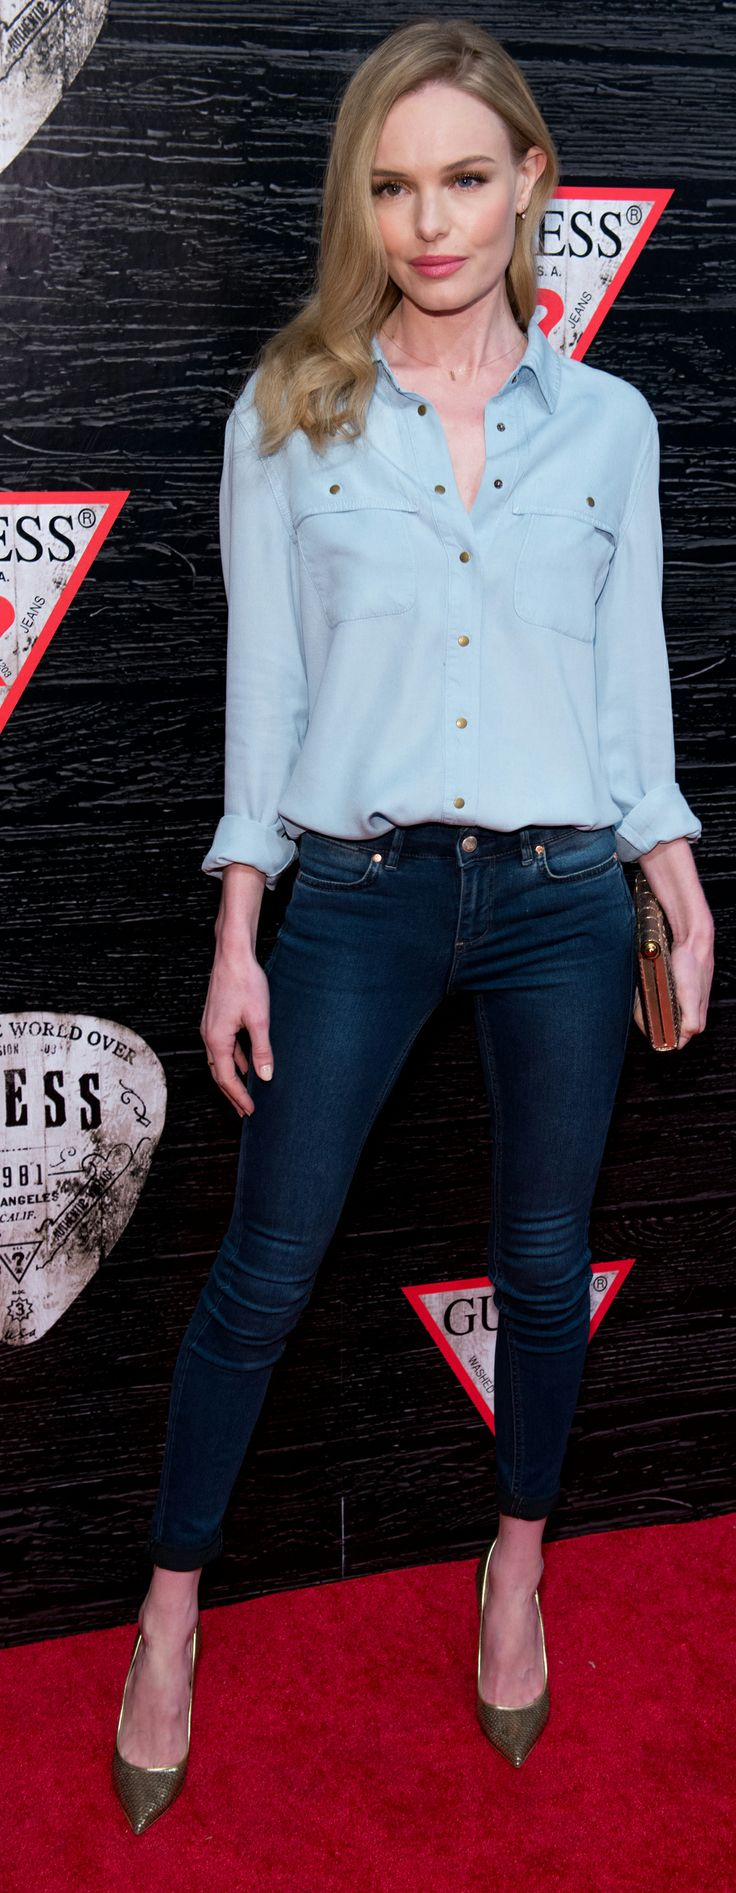 Copy Kate Bosworth's denim-on-denim look starting at just $22!